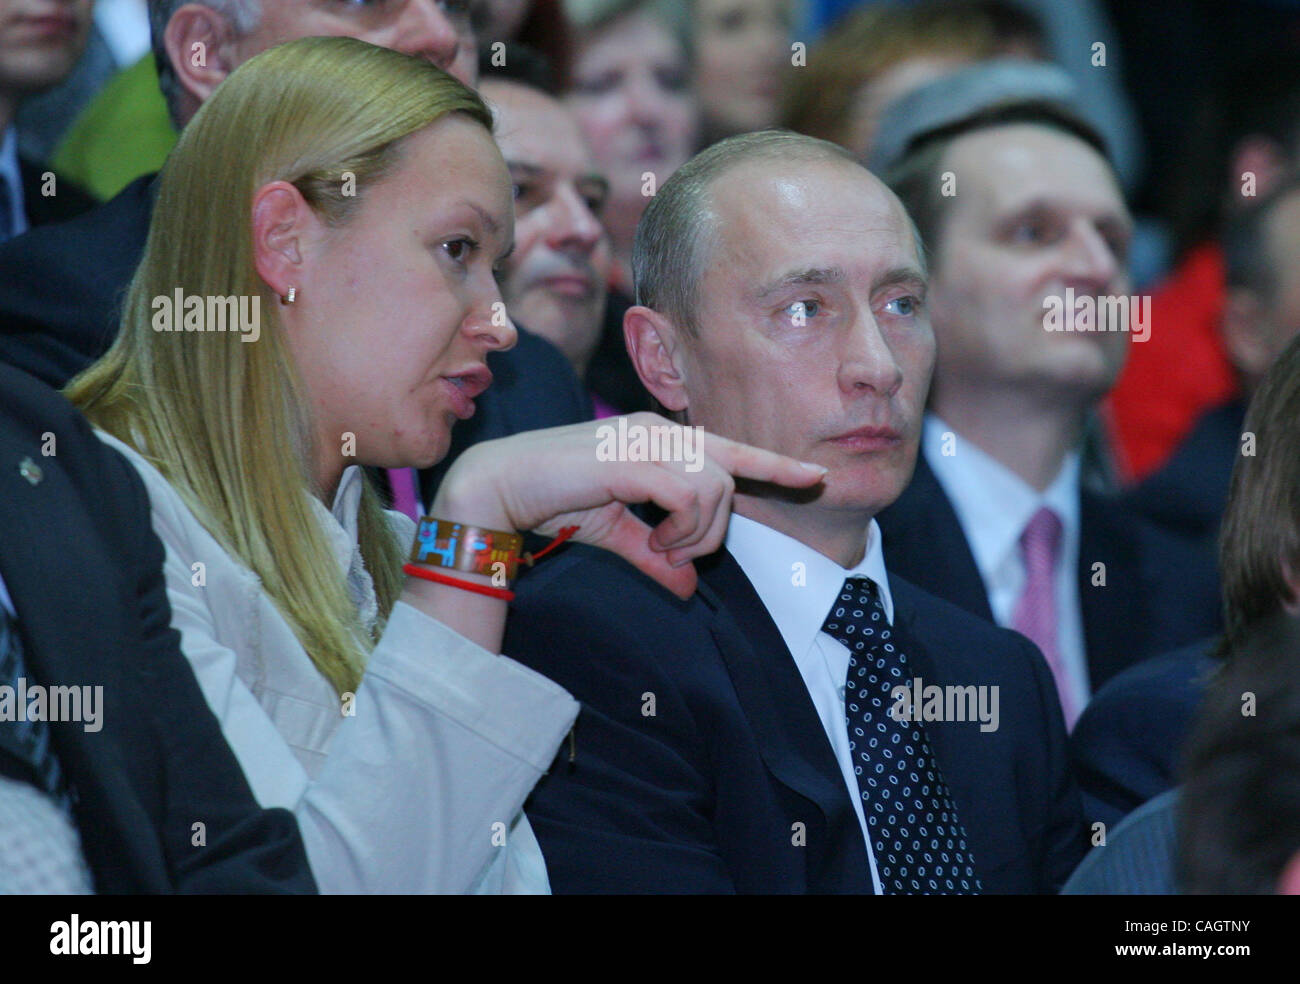 Moscow Russia February 5 Russian President Vladimir Putin Among Stock Photo Alamy